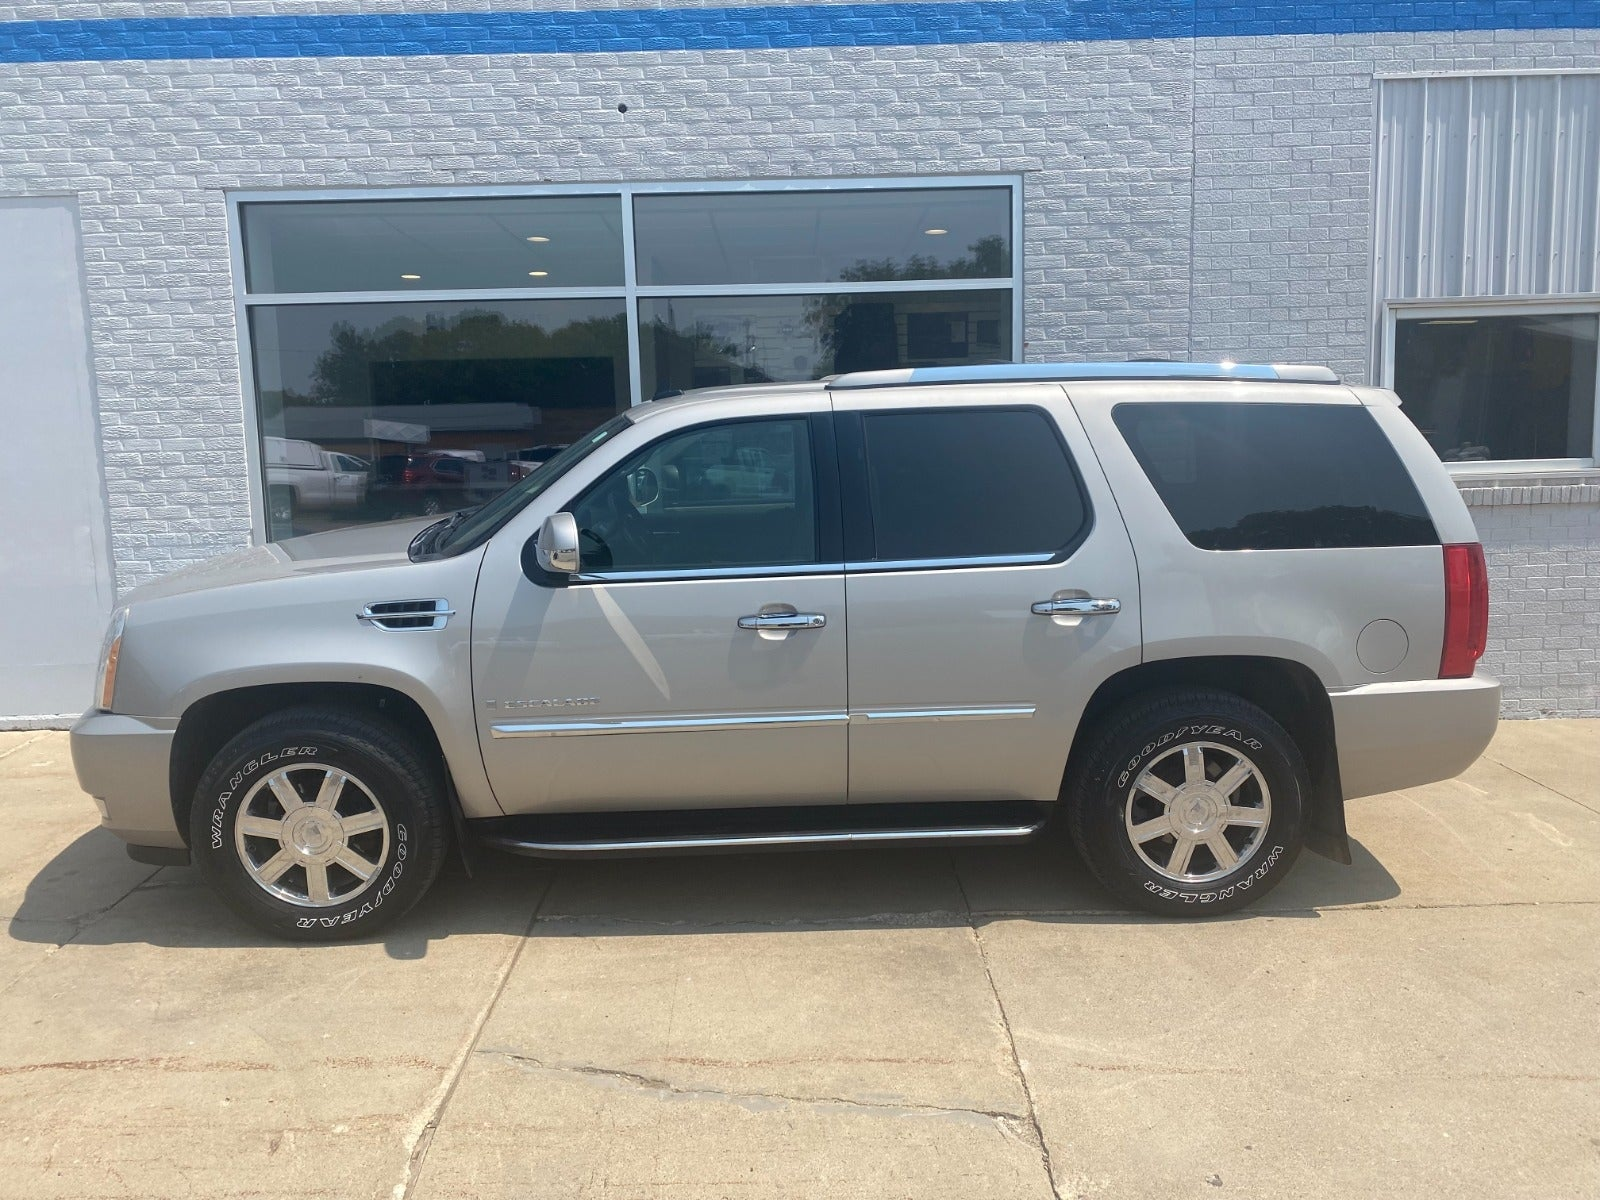 Used 2008 Cadillac Escalade  with VIN 1GYFK63818R190854 for sale in Edgerton, Minnesota